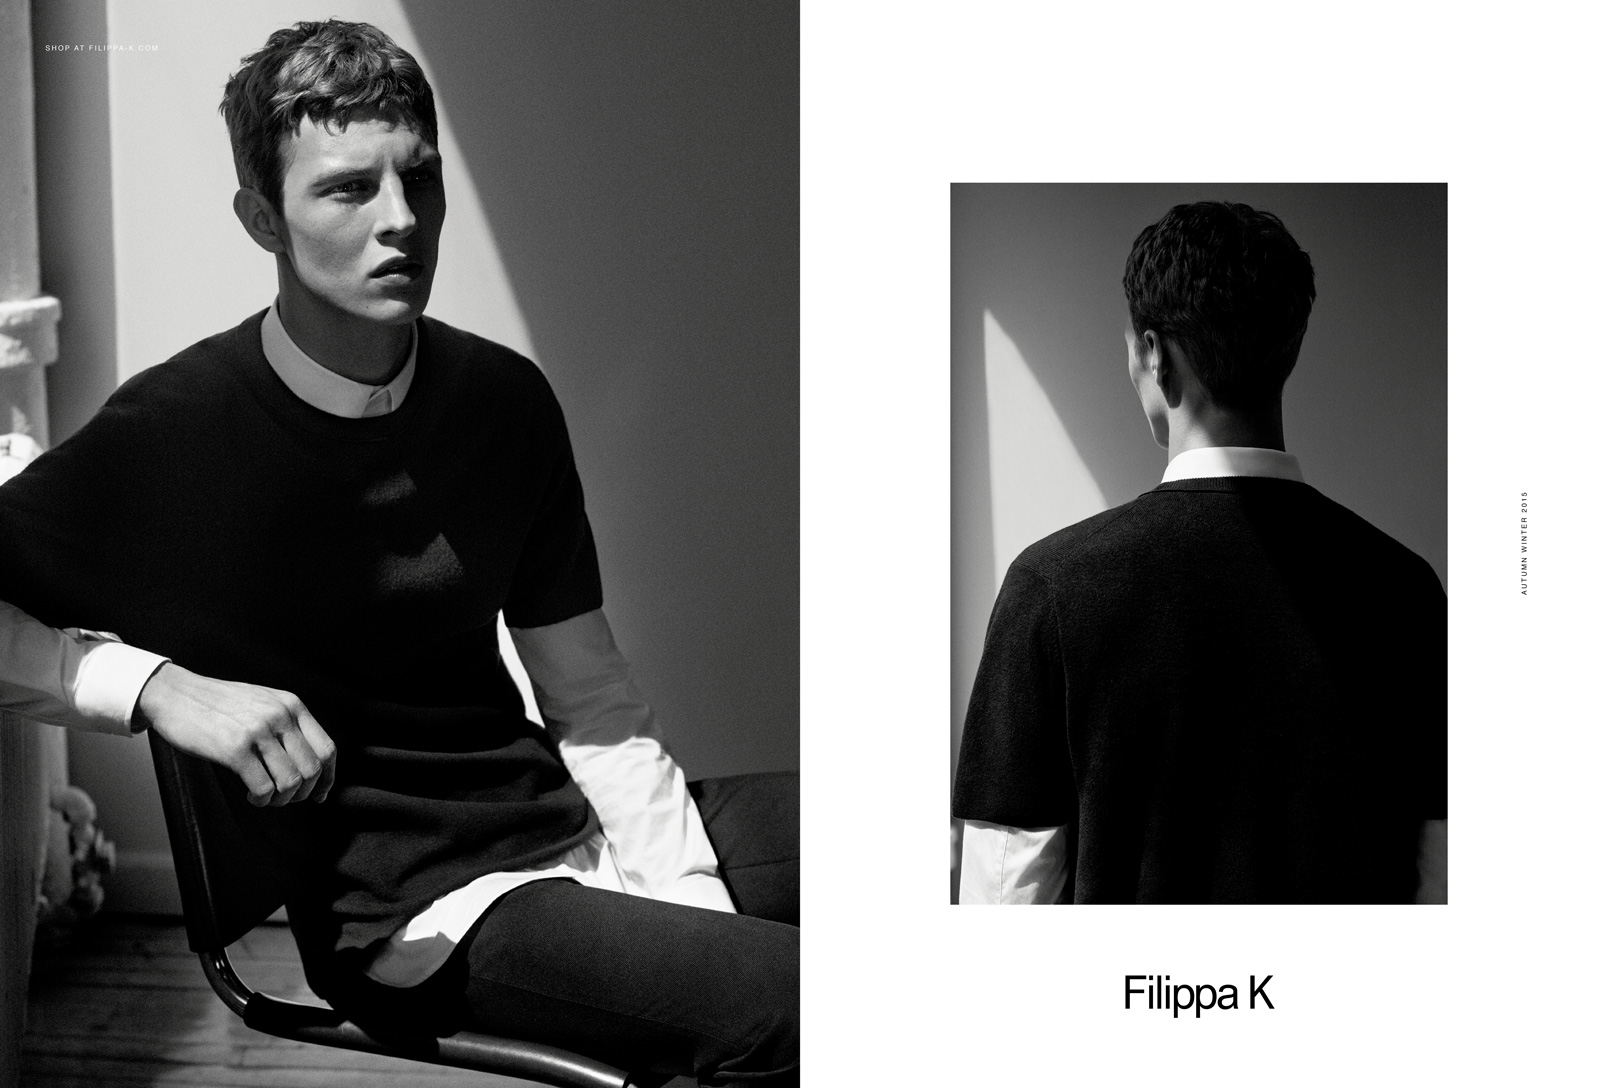 fk_aw15_dps-layout5